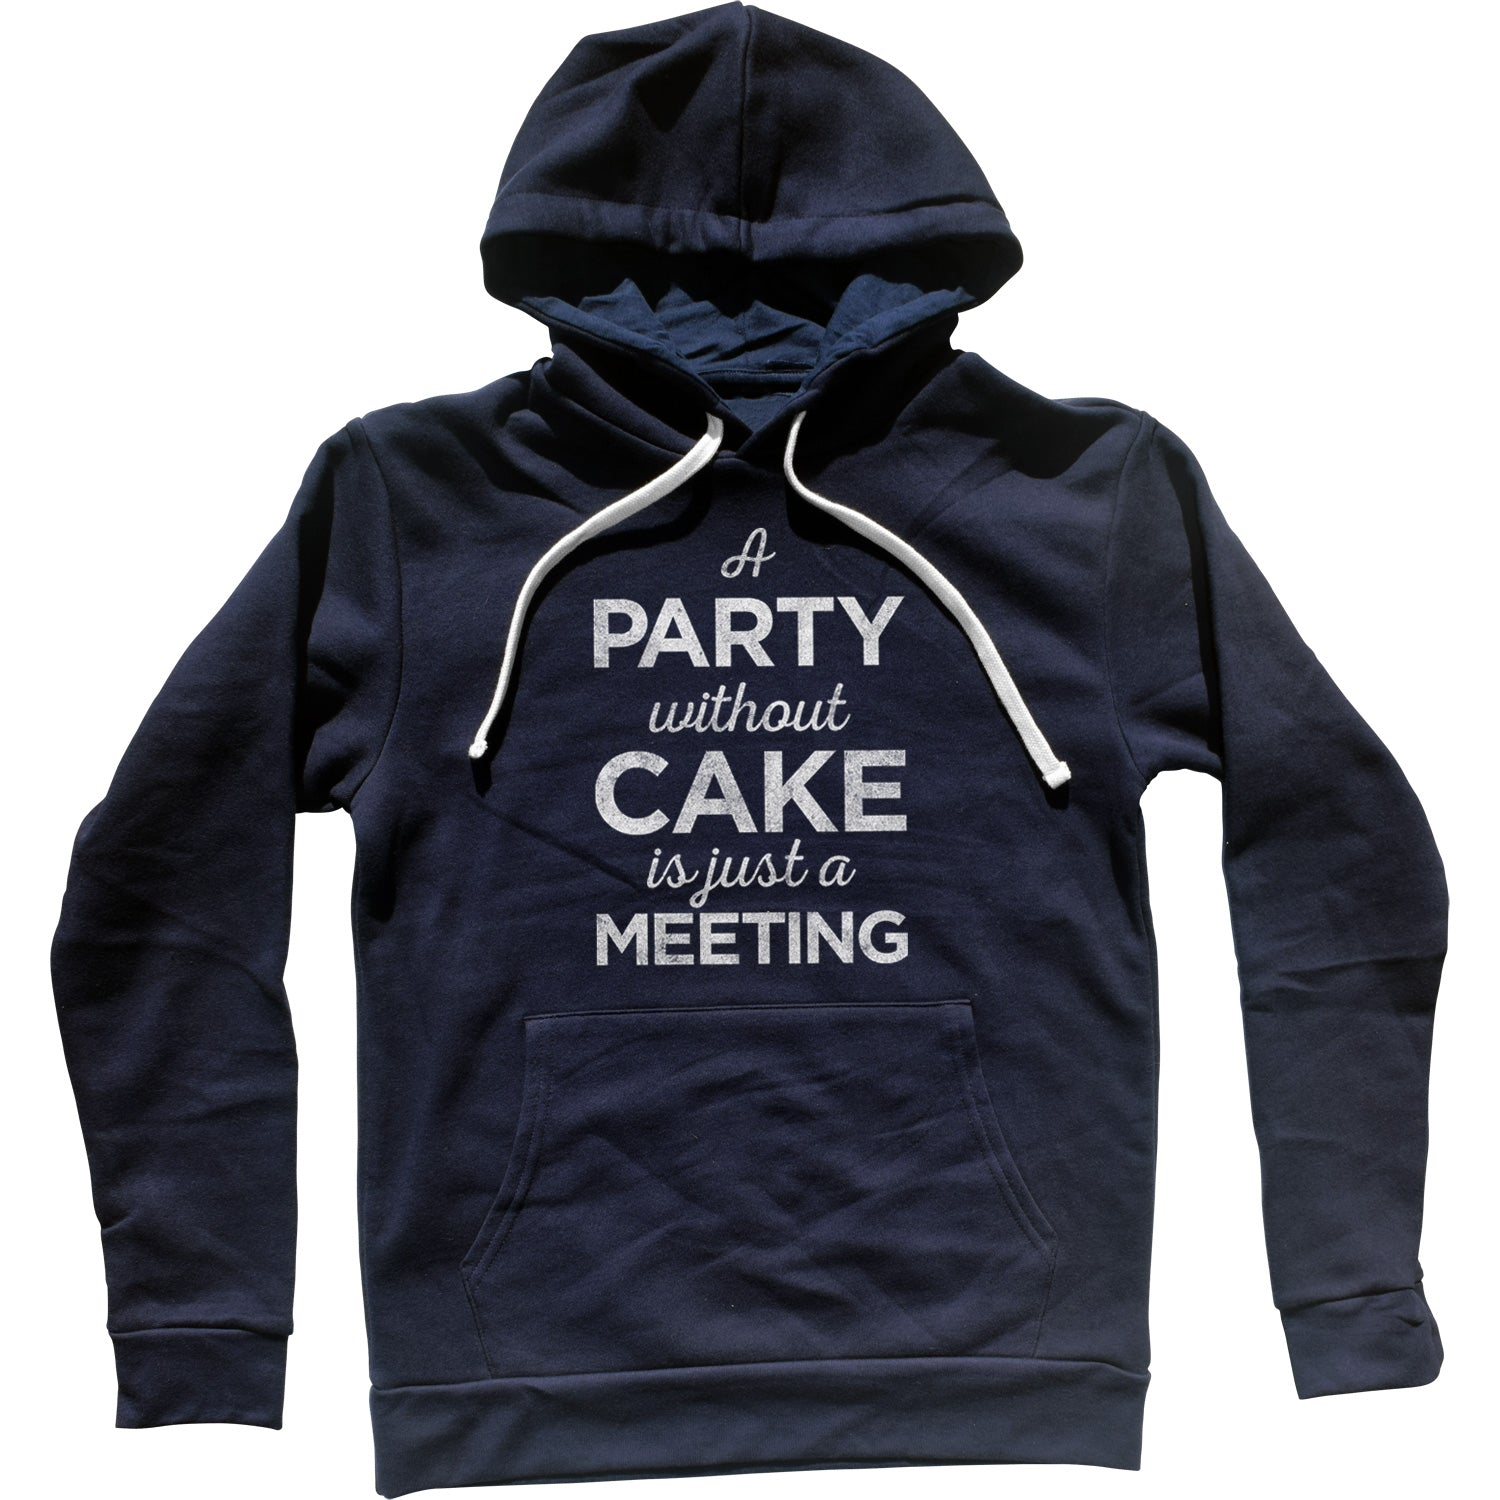 A Party Without Cake is Just a Meeting Unisex Hoodie